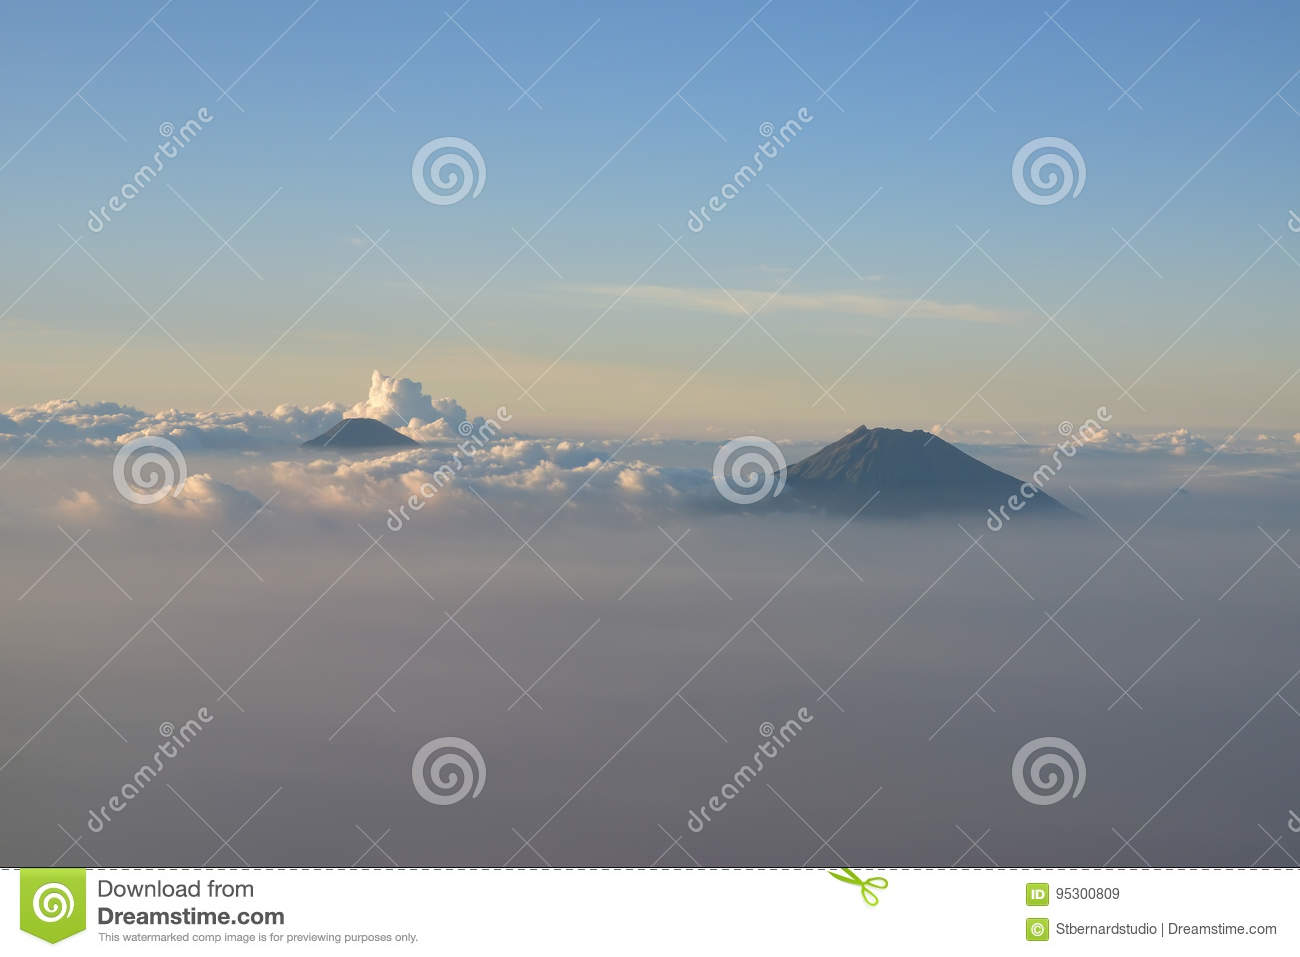 Two volcano mountains visible above the cloud around Yogyakarta, Indonesia near sunset